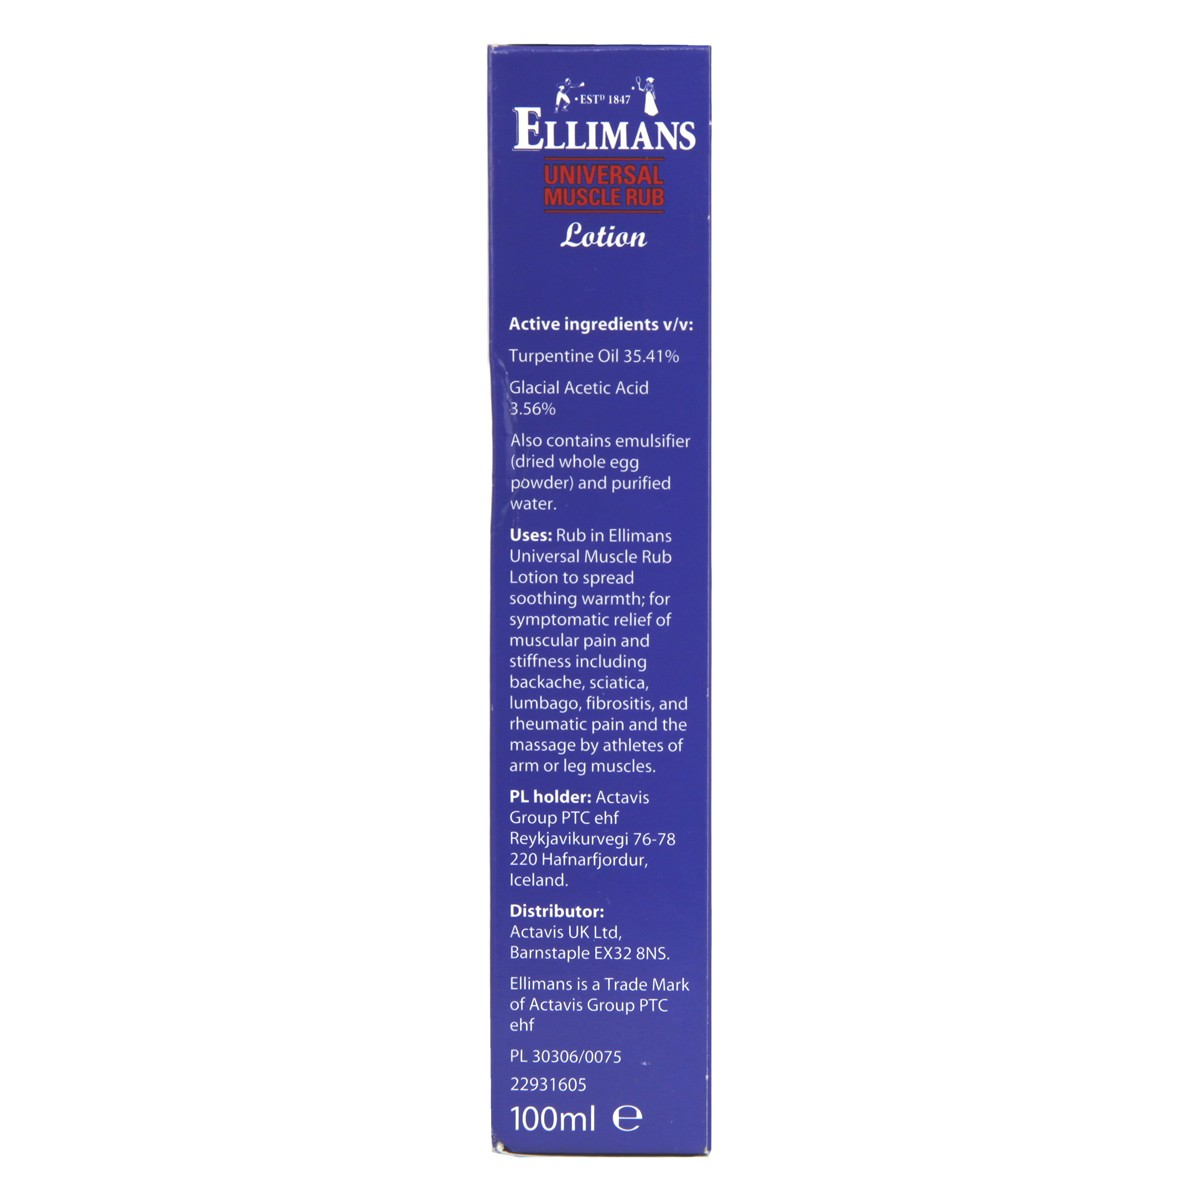 Ellimans Universal Muscle Rub Lotion